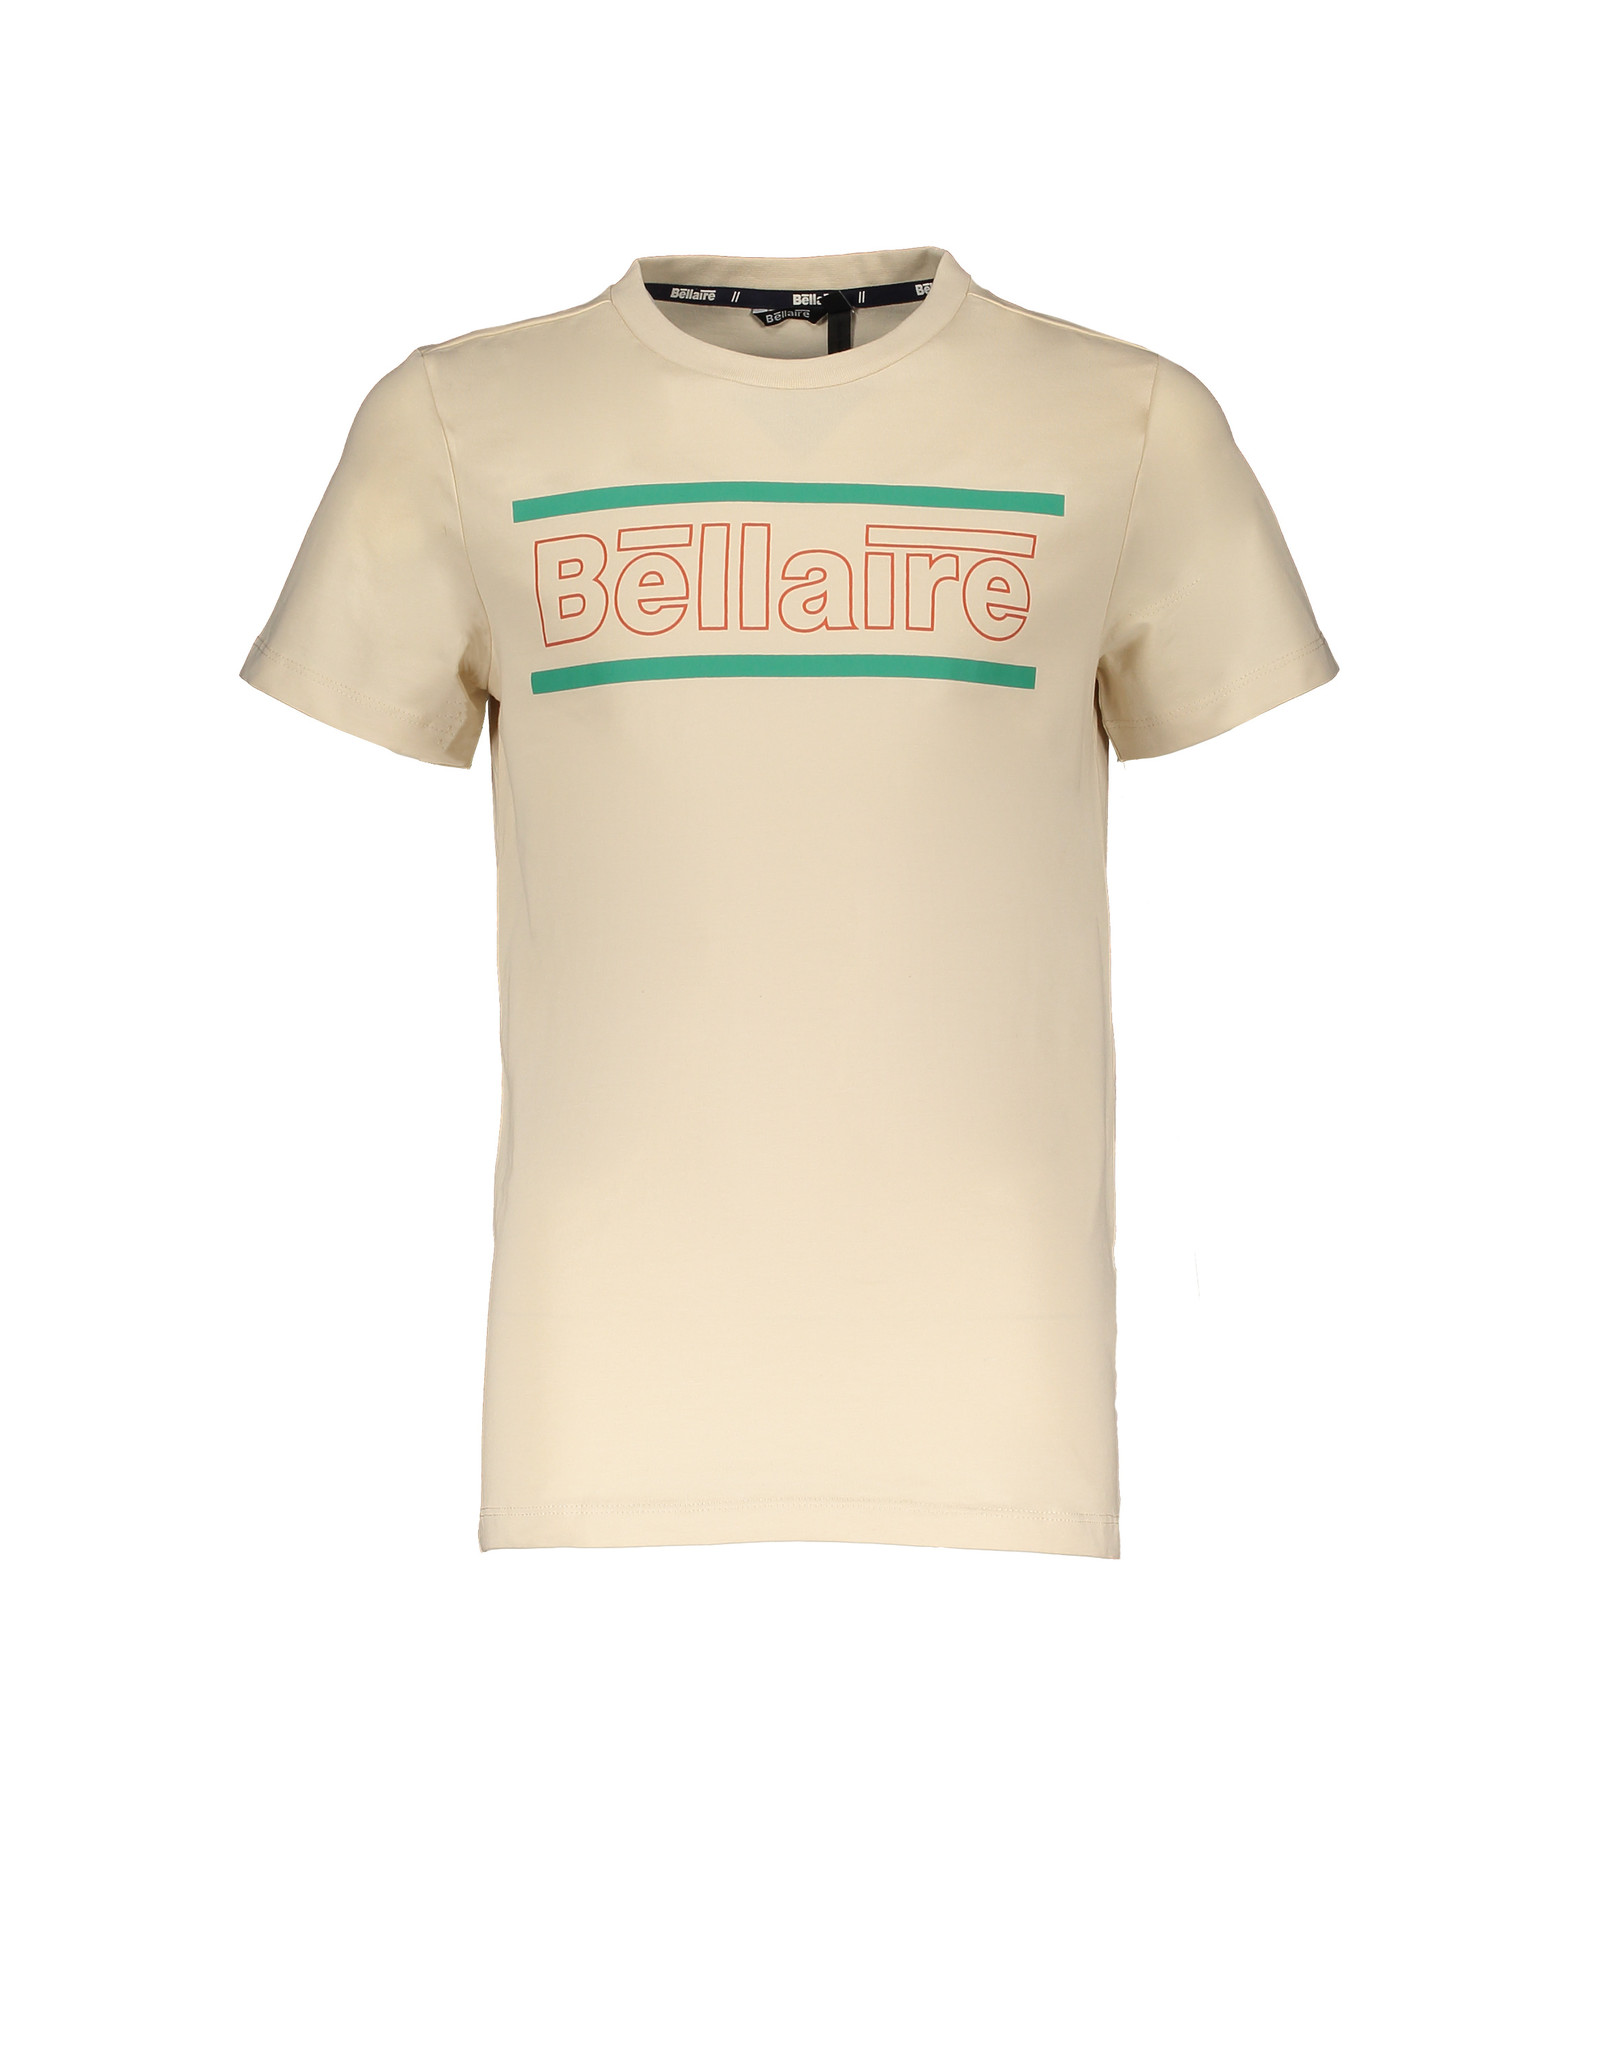 Bellaire T-shirt 'Bellaire'